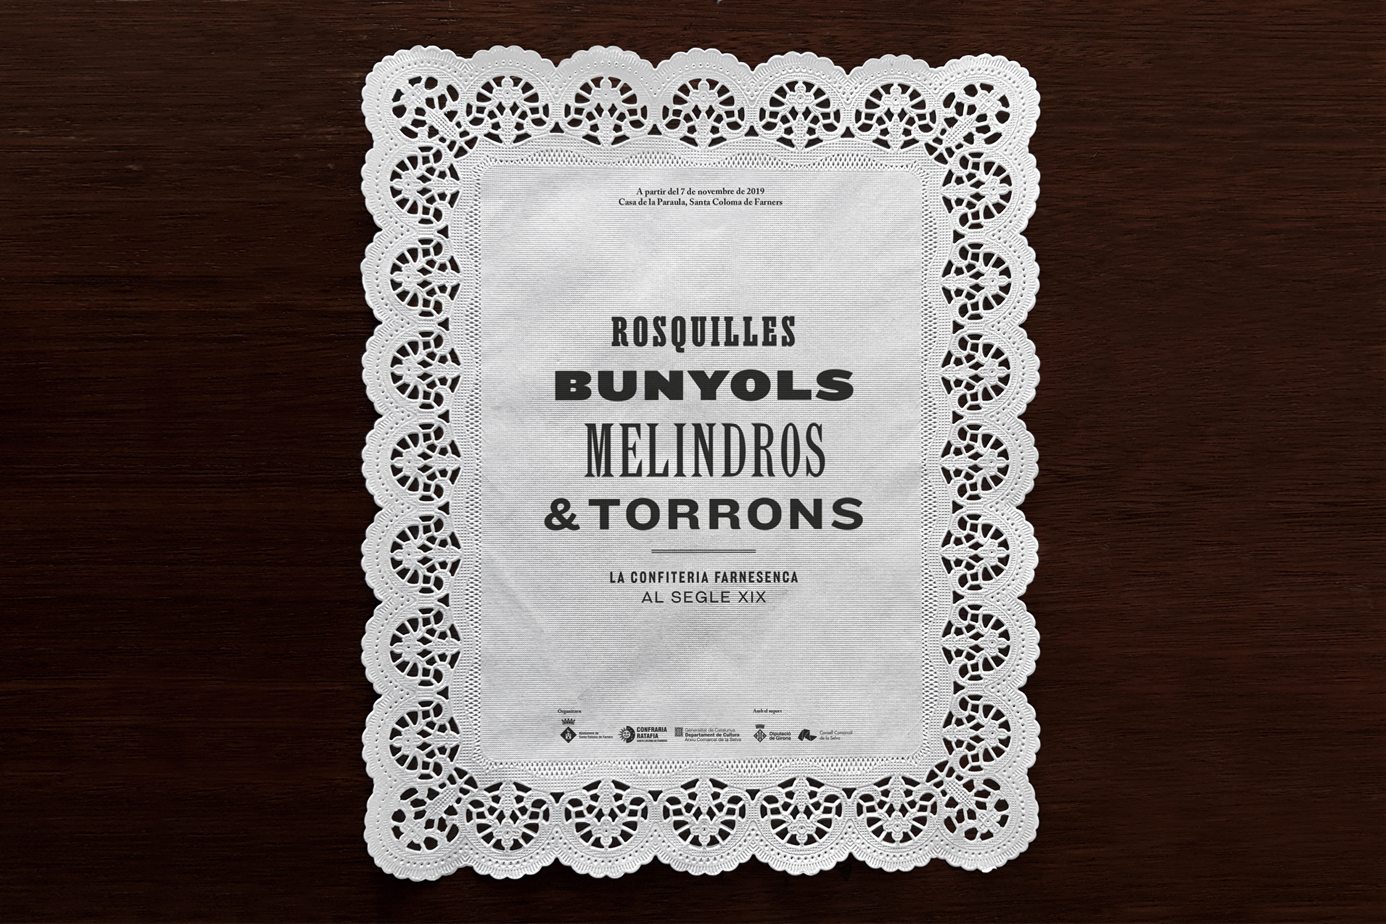 ROSQUILLES, BUNYOLS, MELINDROS & TORRONS by La Fonda Gràfica - Creative Work